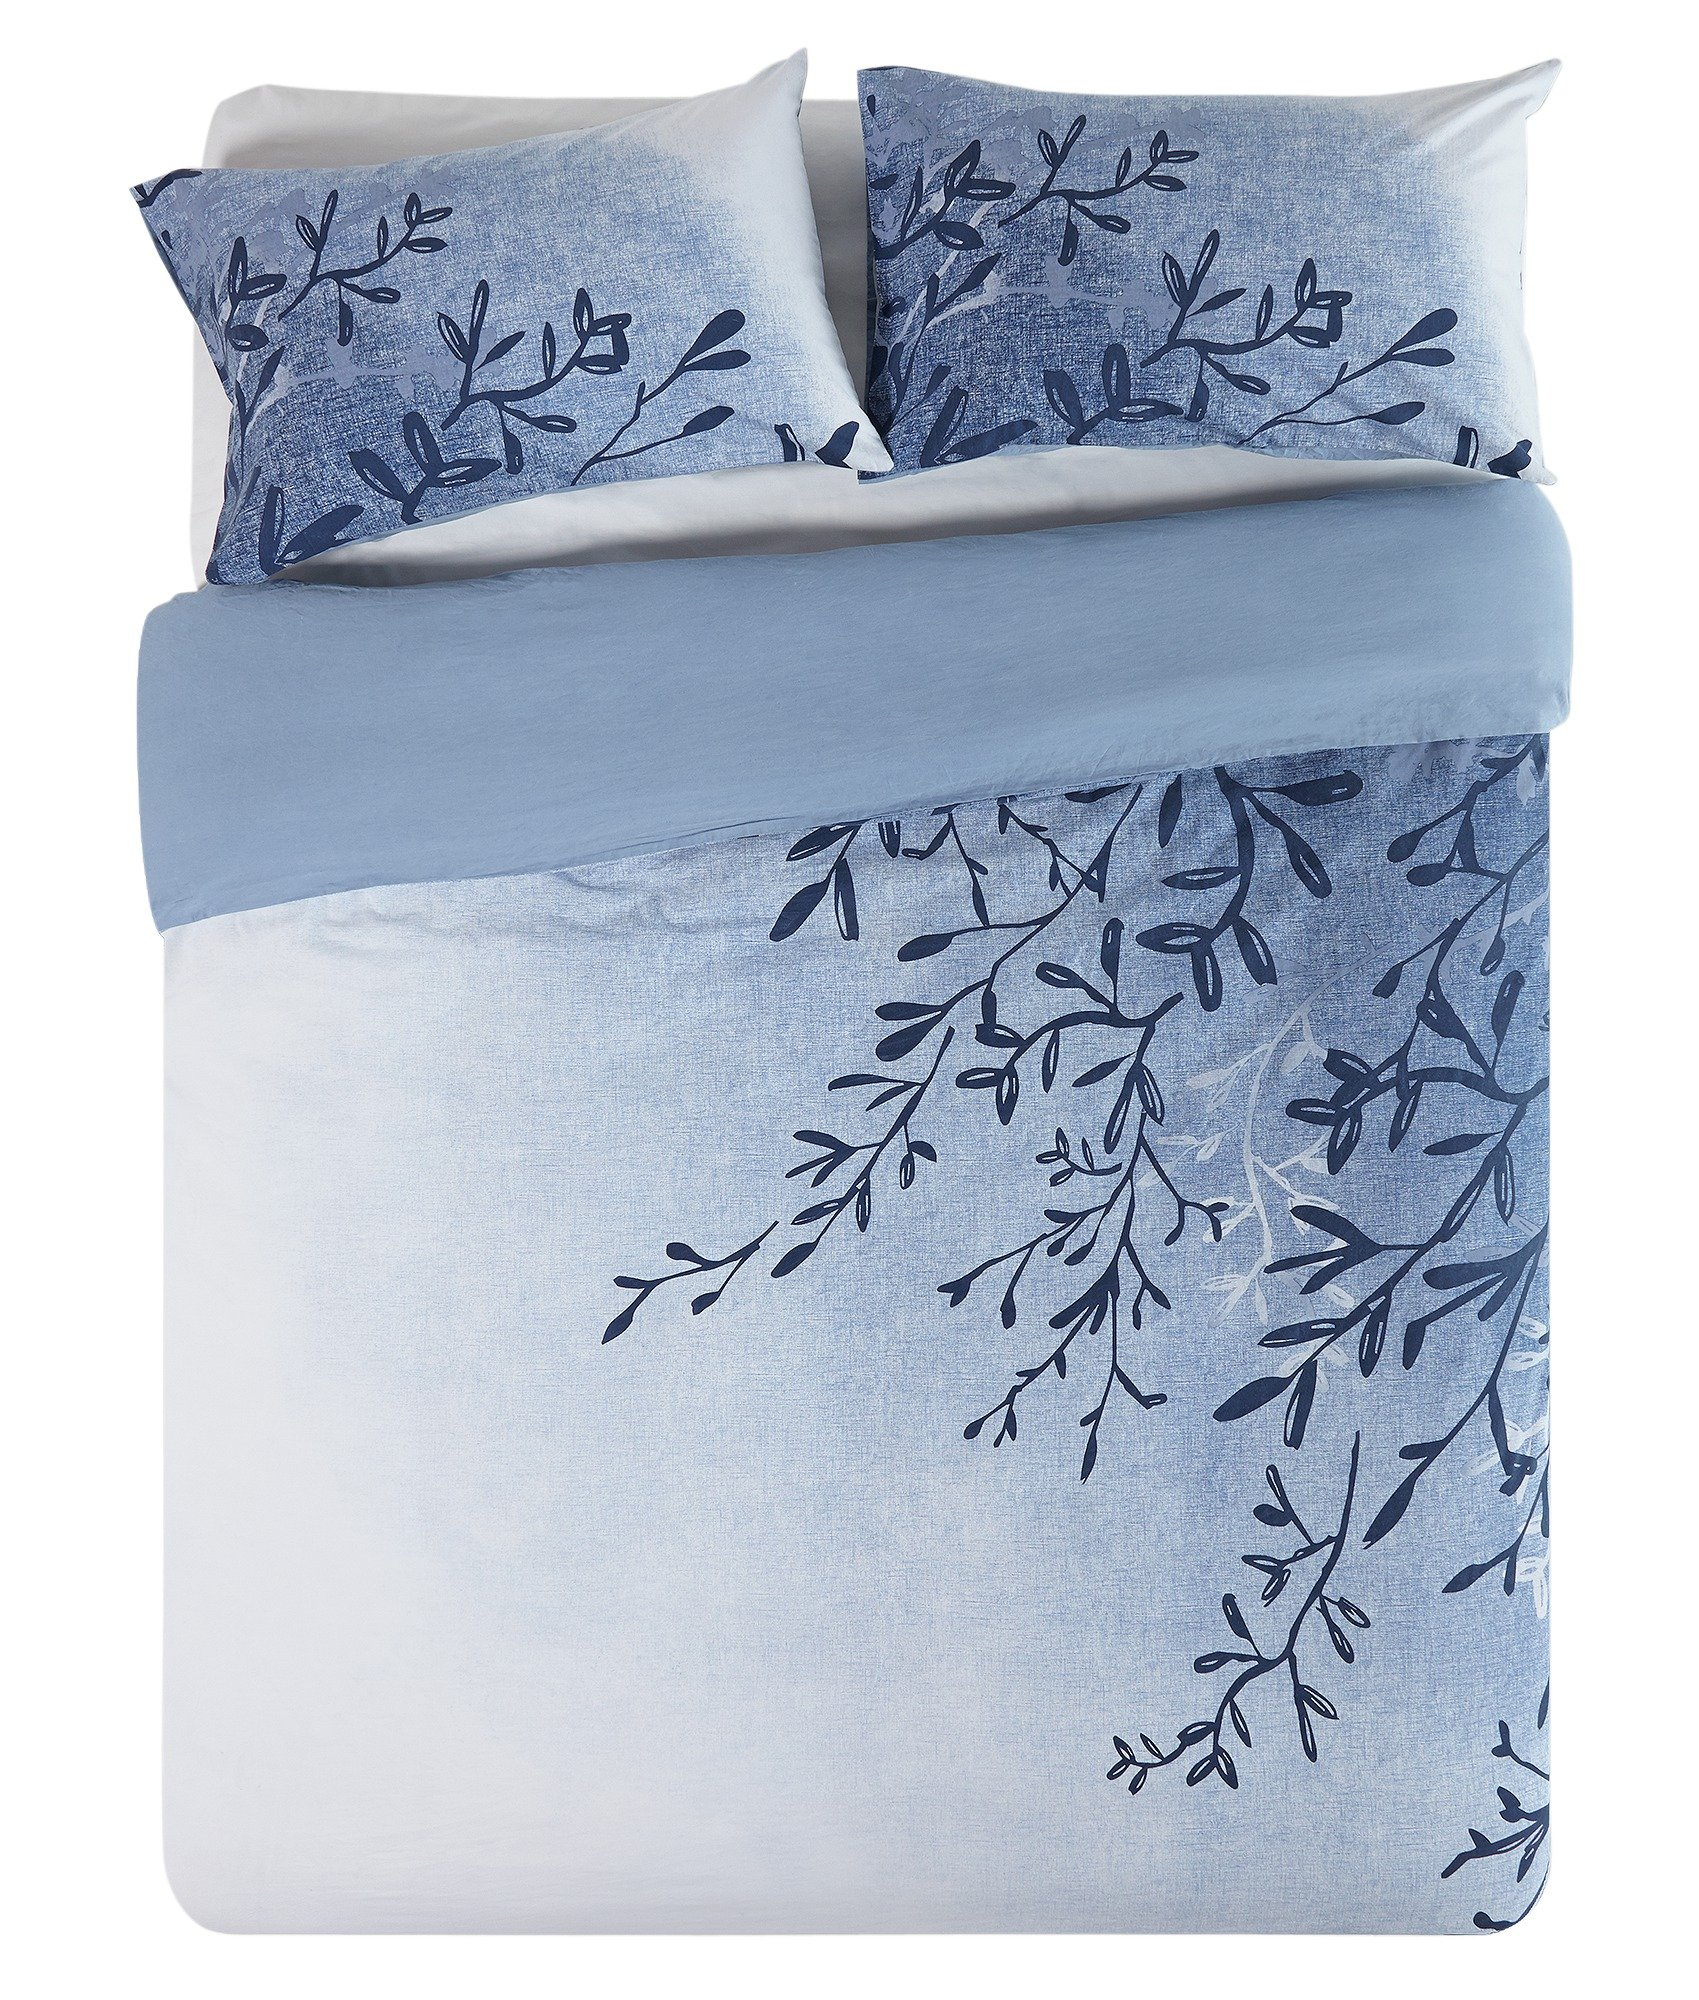 collection serenity bedding set double gay times uk. Black Bedroom Furniture Sets. Home Design Ideas